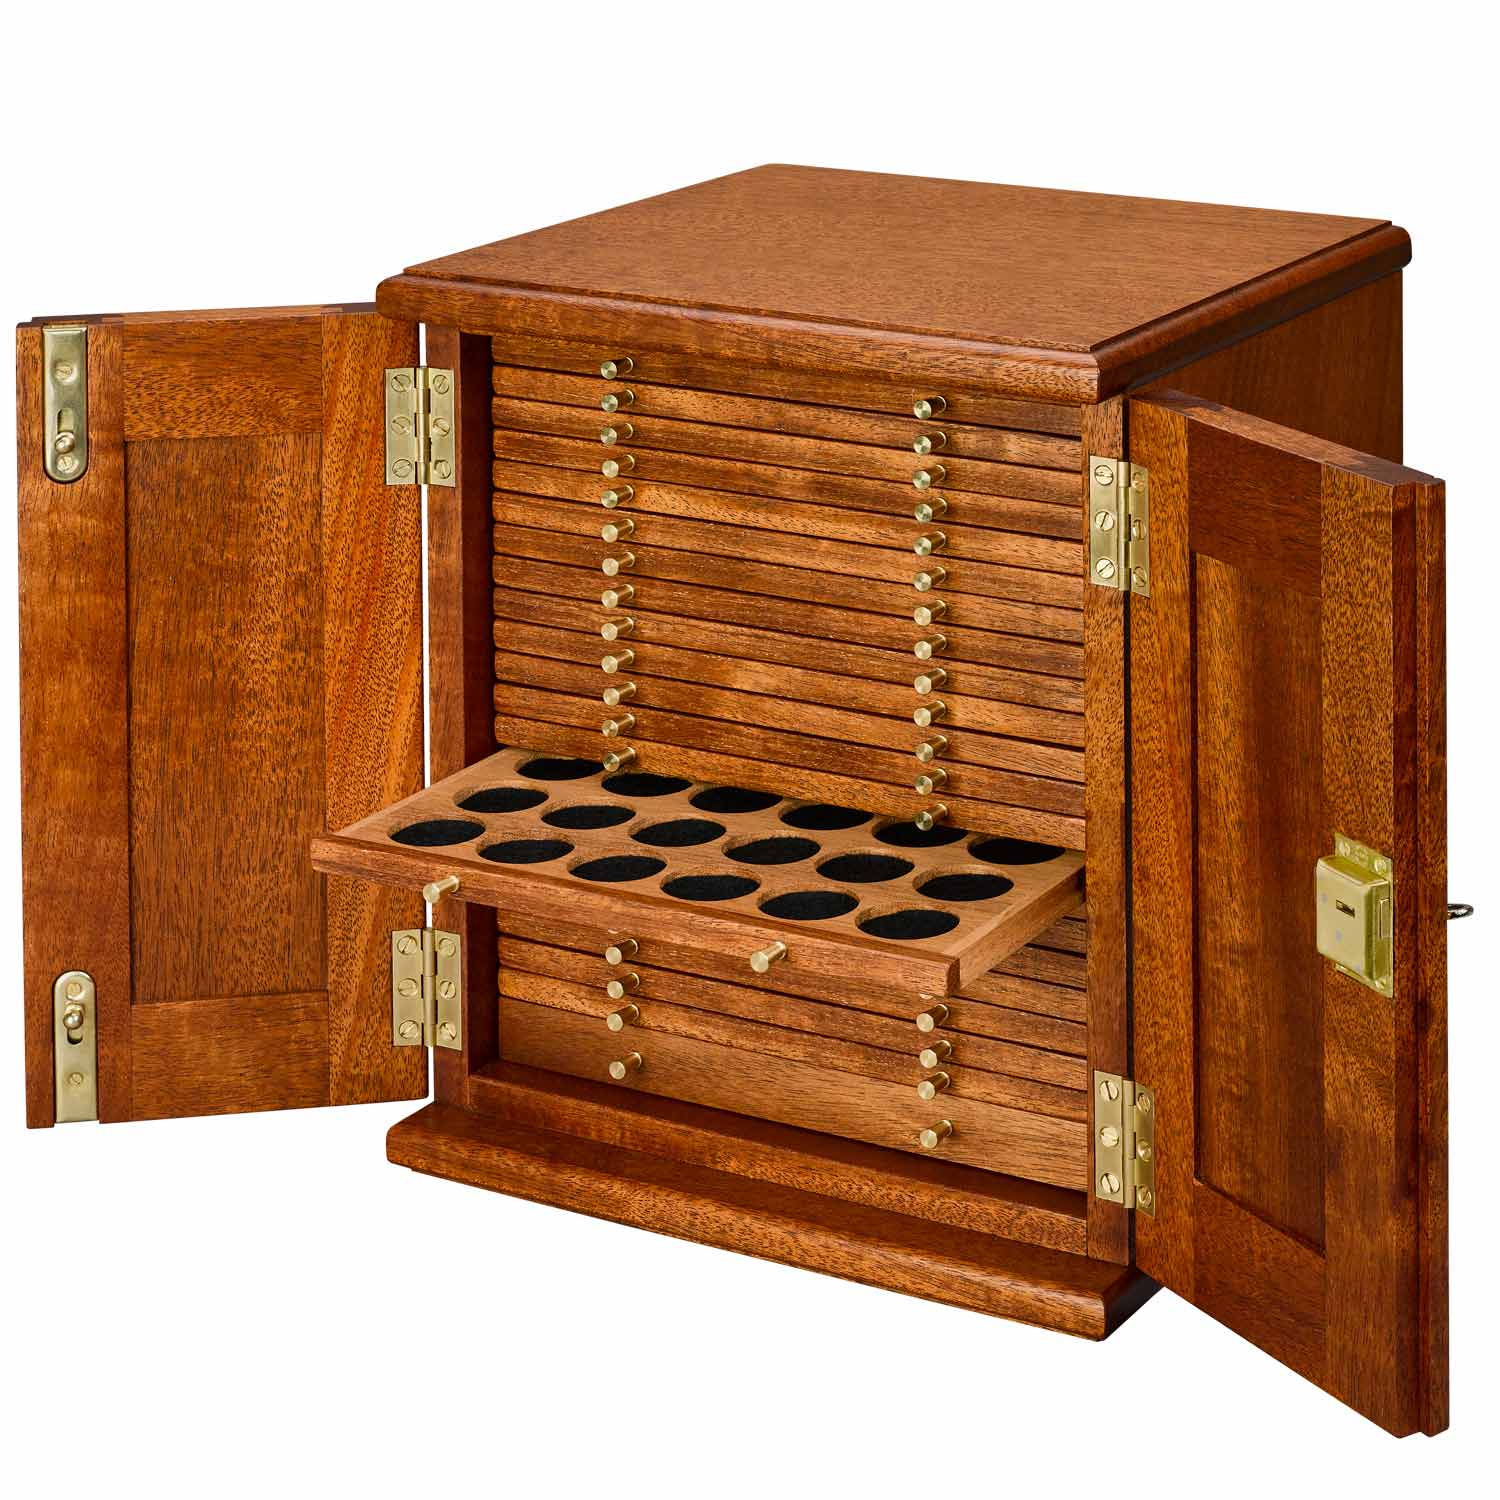 Coin Cabinet 21 Trays with Small Holes